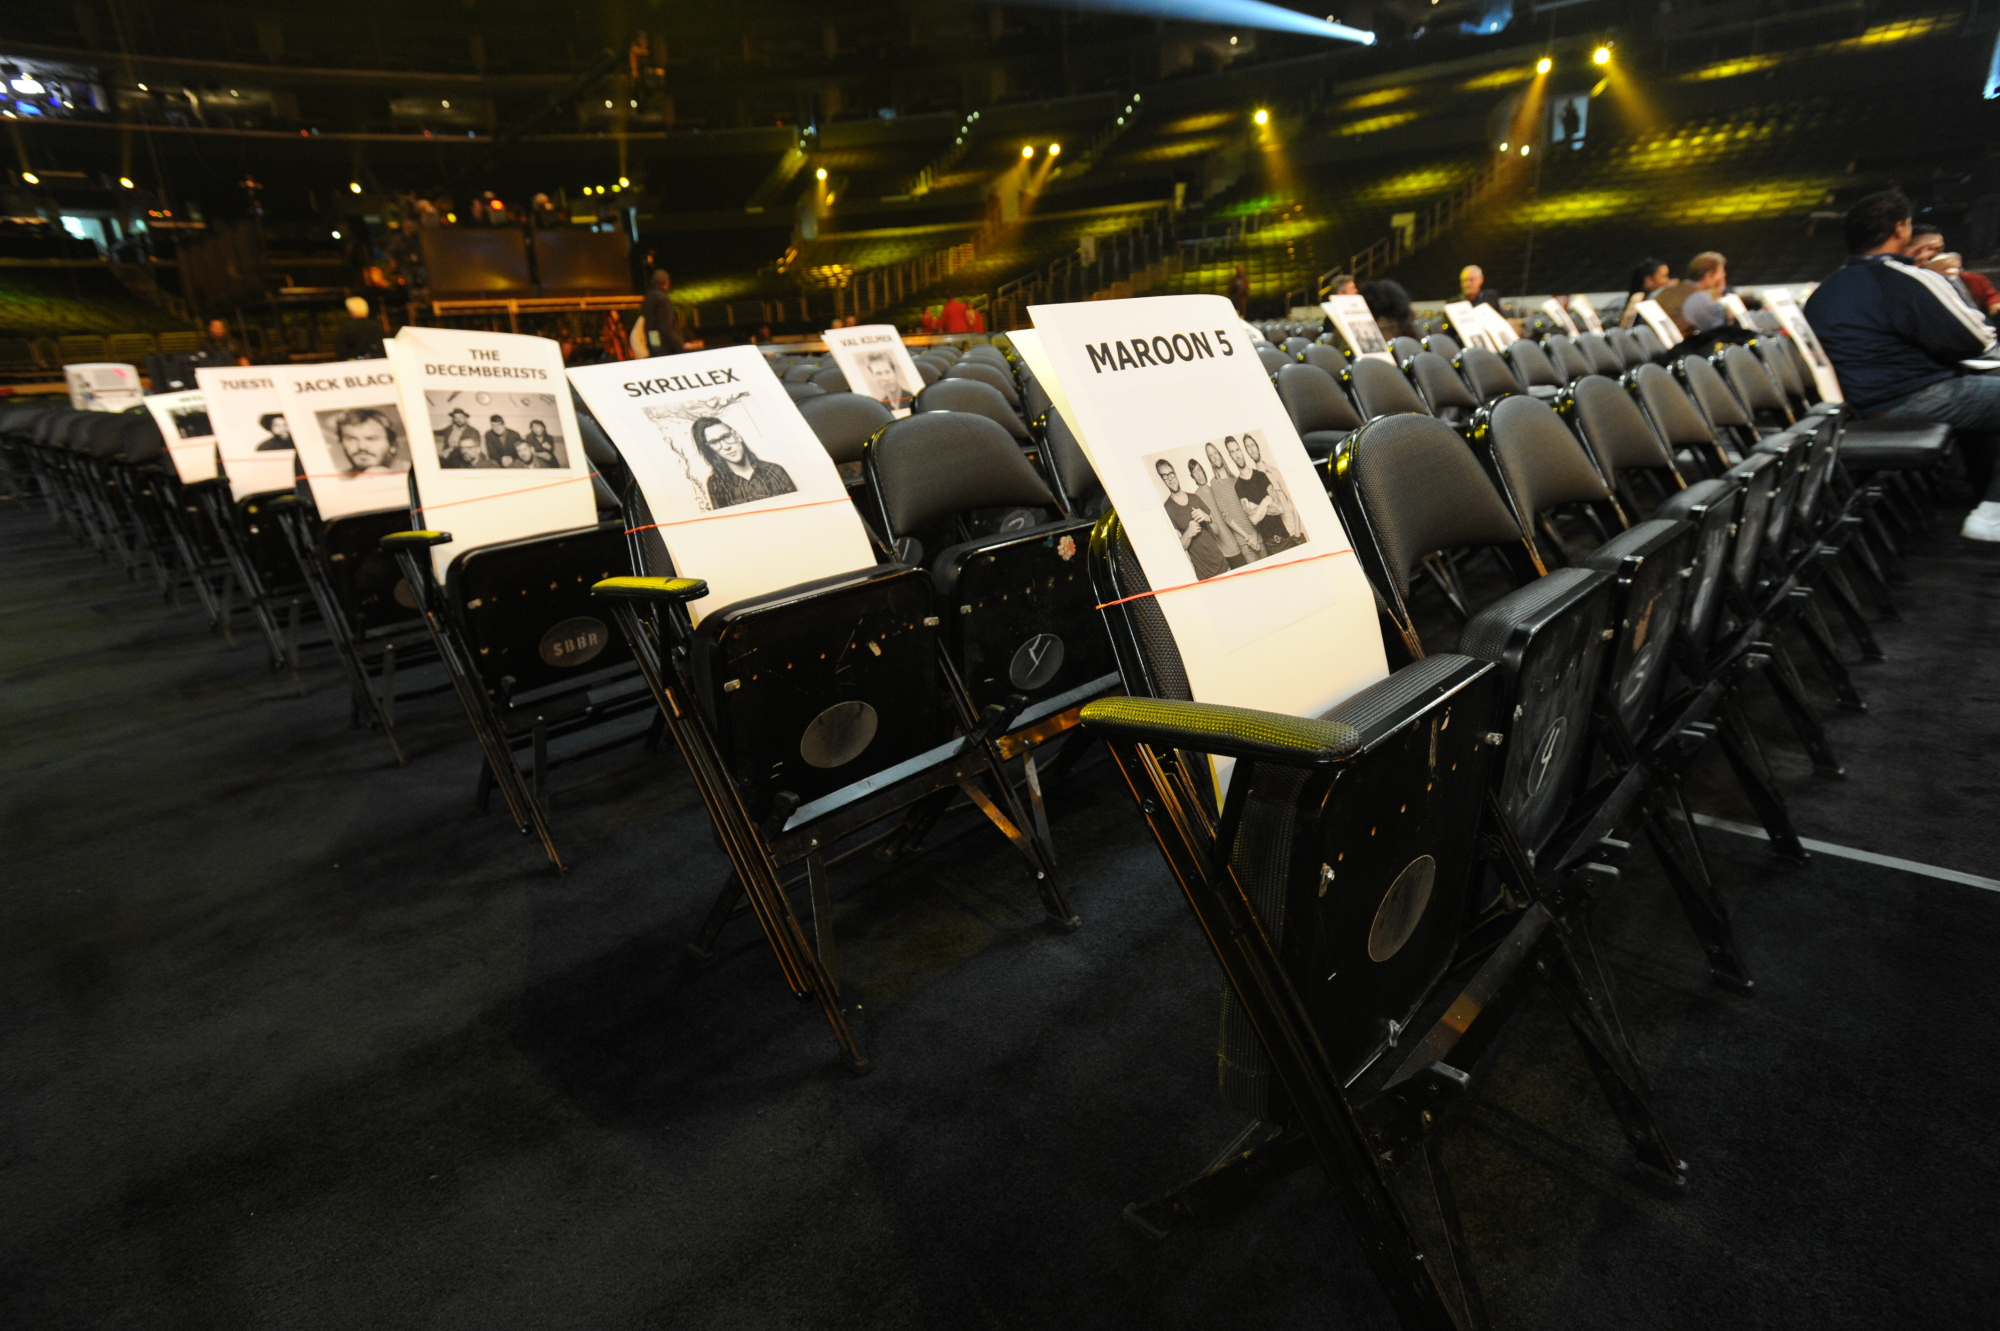 GRAMMY Aisle Seats